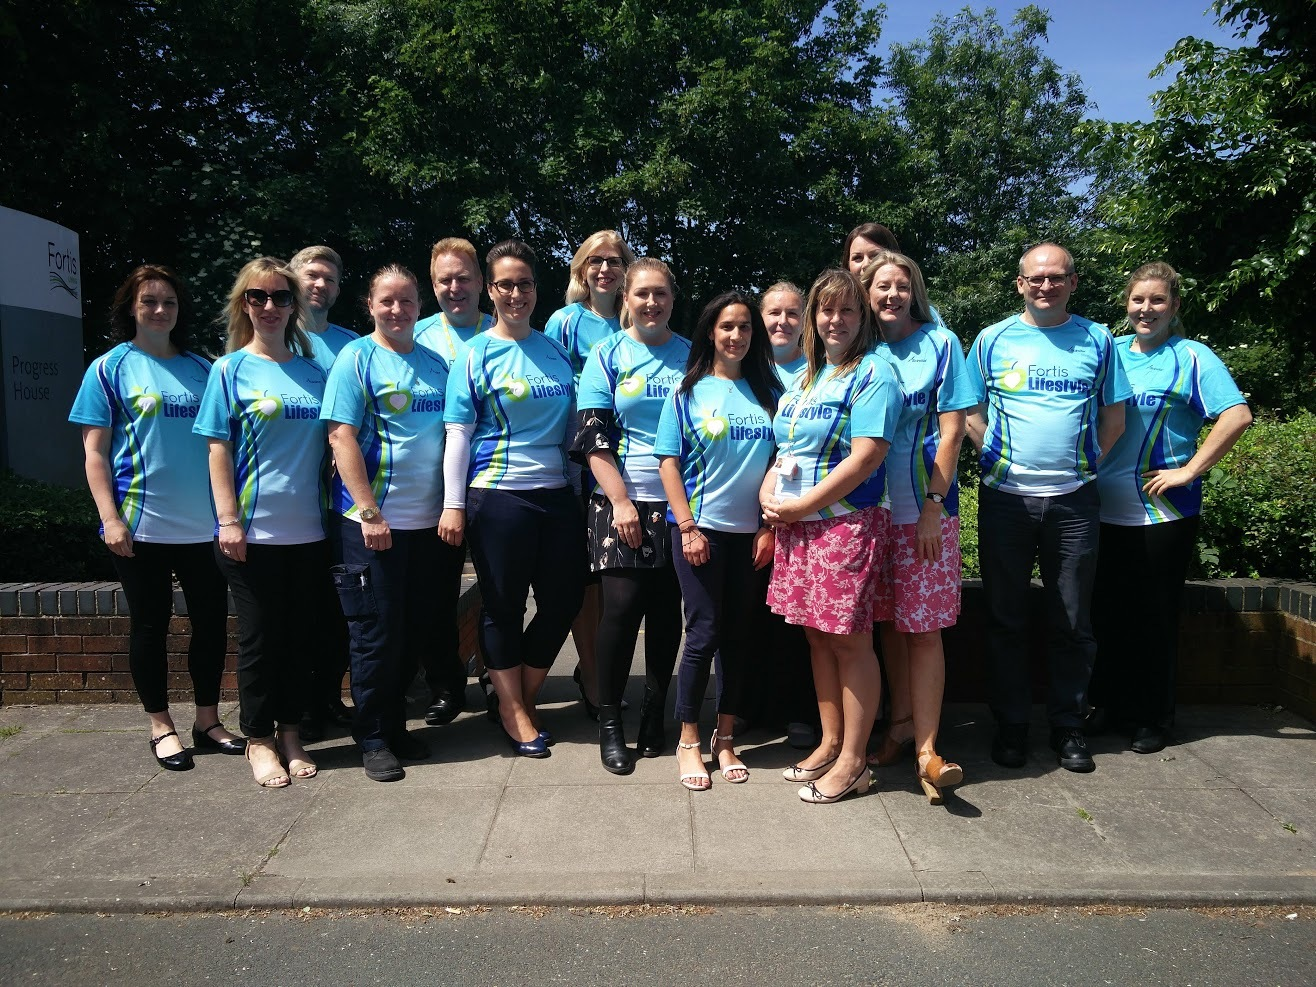 KIND-HEARTED: A team from Fortis will be racing the dragon this summer to raise money for Parkinson's UK.